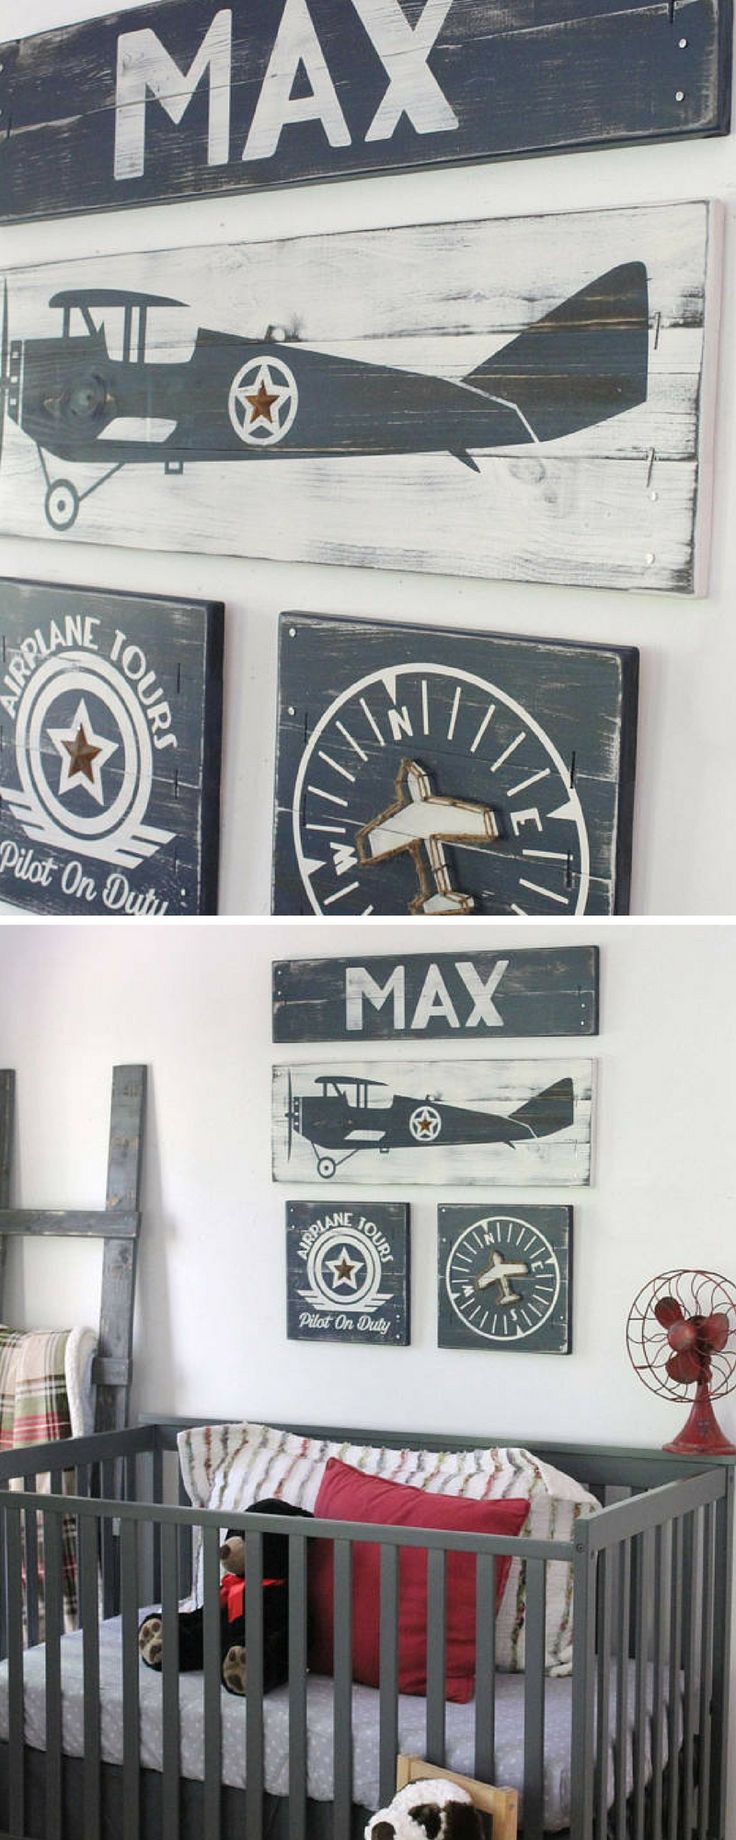 Airplane boys room! Vintage style!  #airplanes #boy #room #nursery #art #decor #ad #etsy